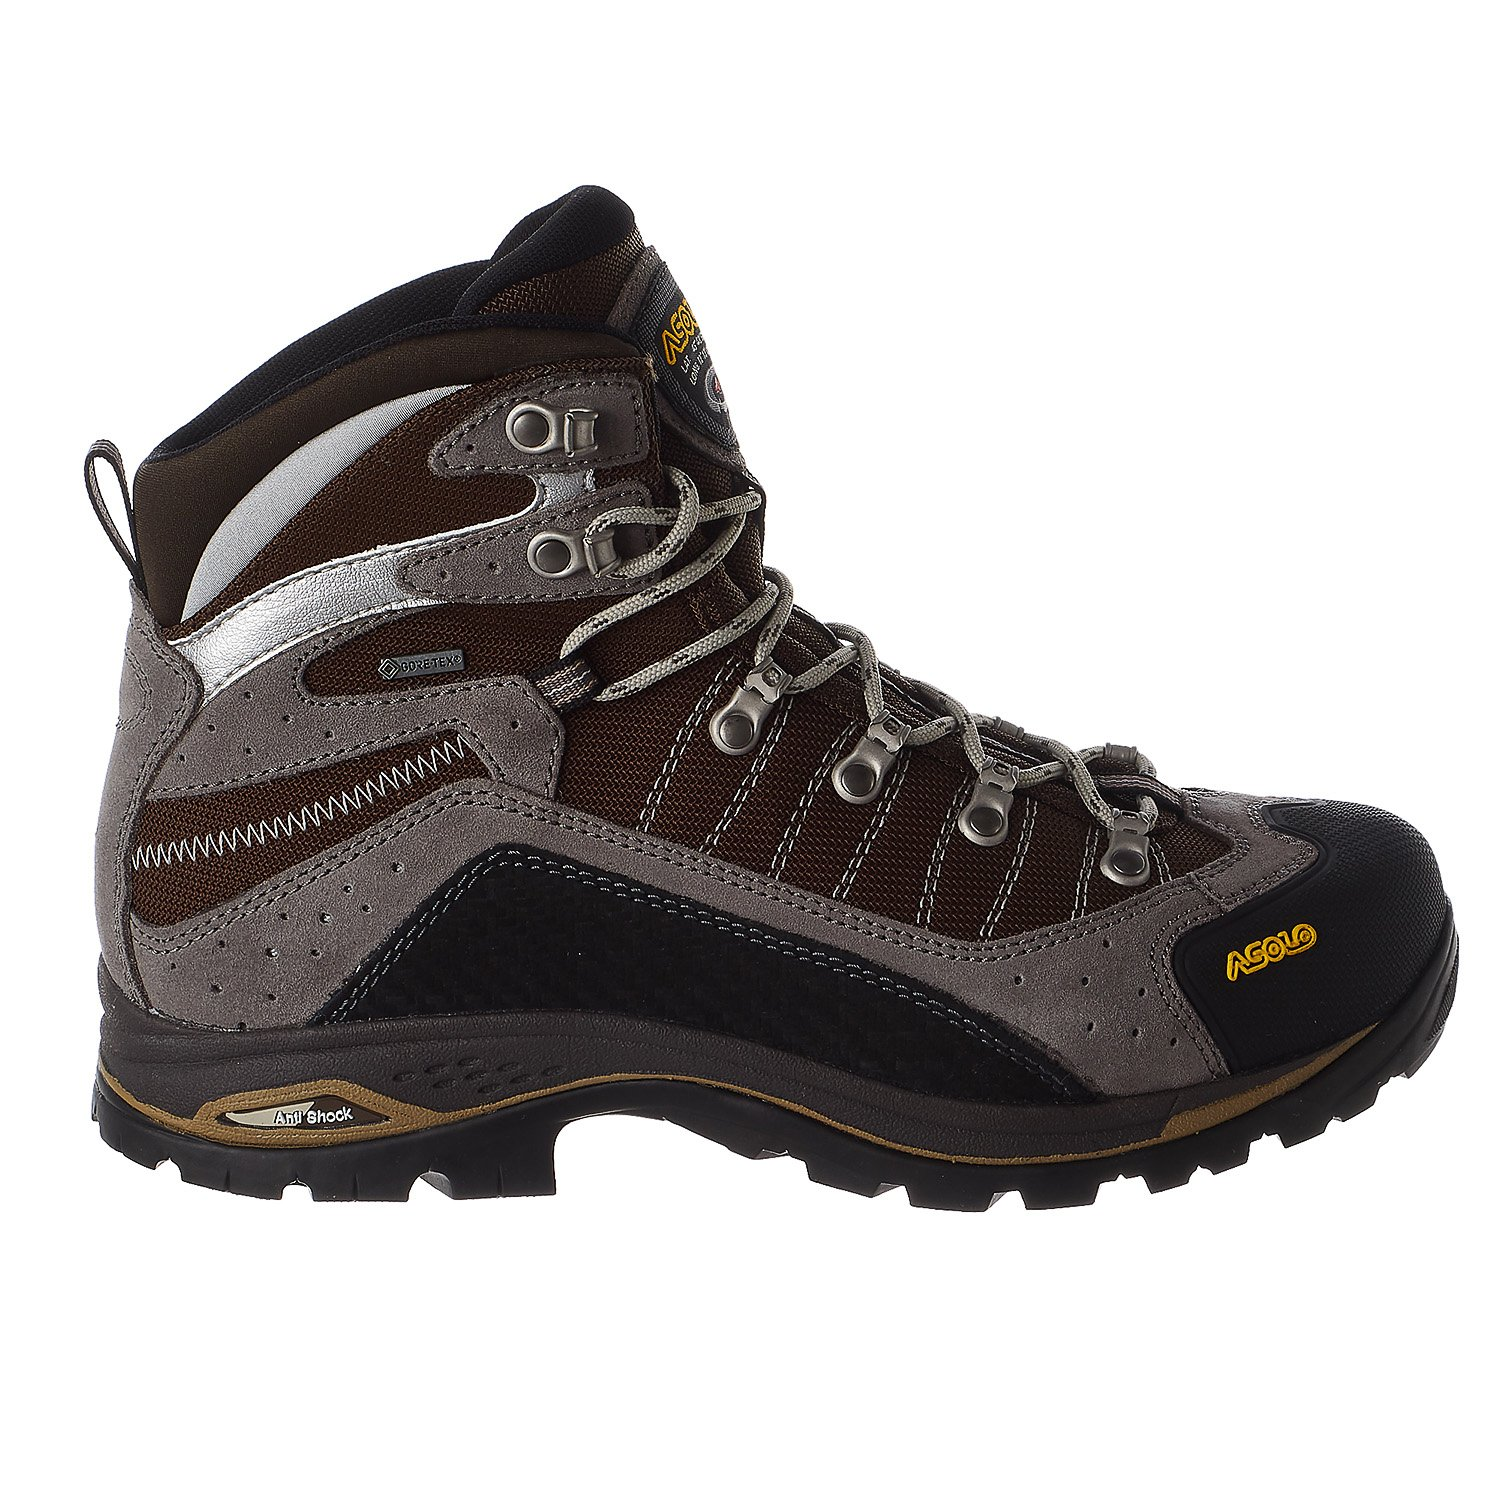 Asolo Men Drifter GV Hiking Boots B00WE3LOCE 14 D(M) US|Cendre/Brown